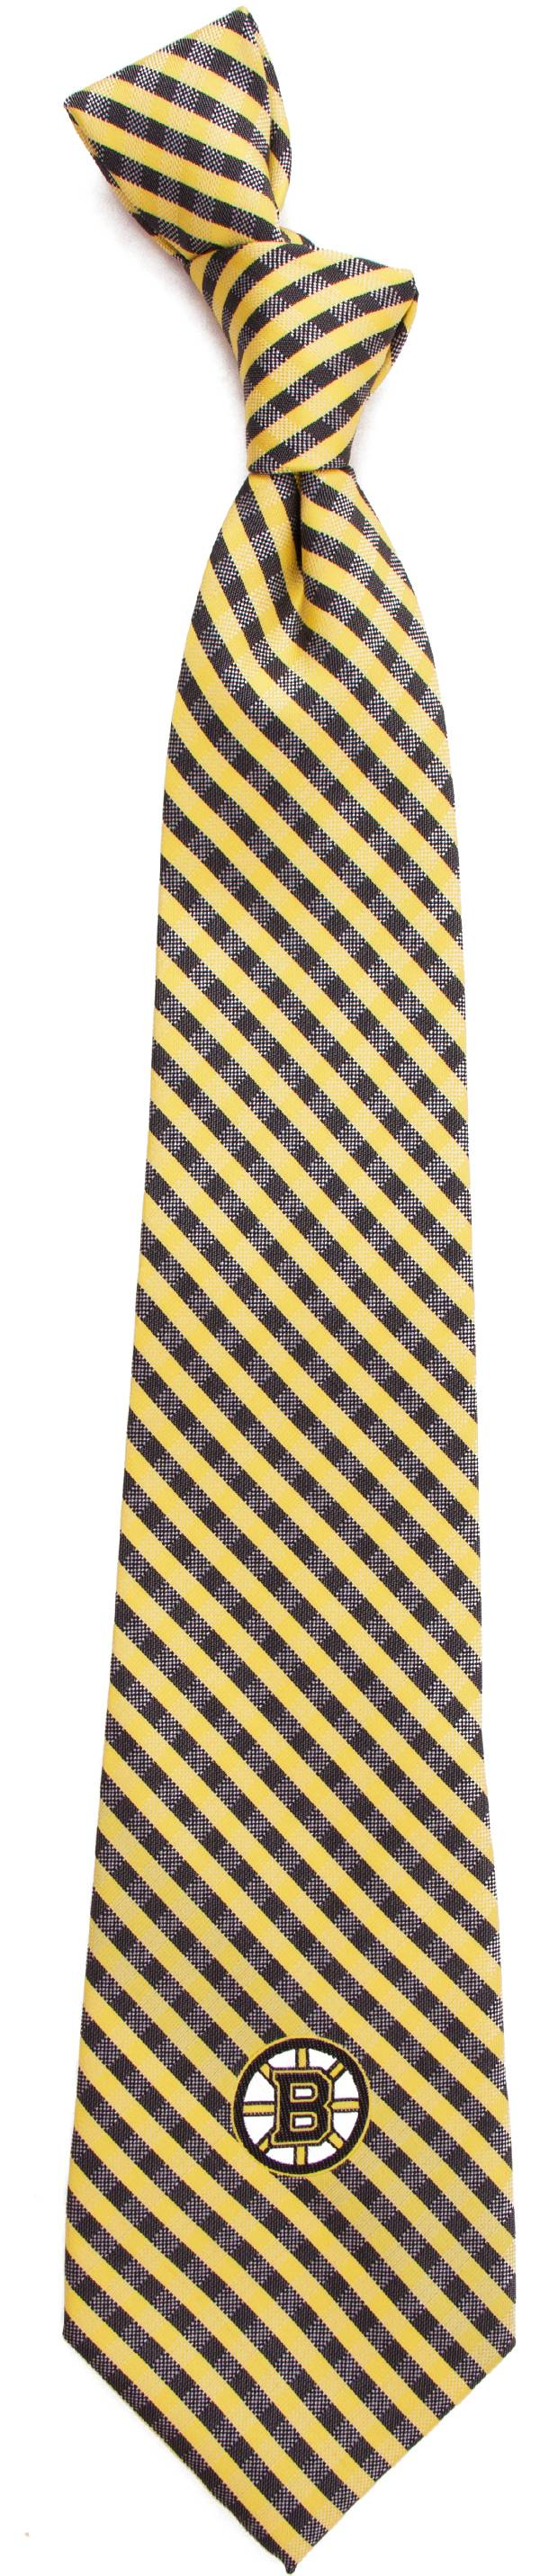 Eagles Wings Boston Bruins Gingham Necktie product image